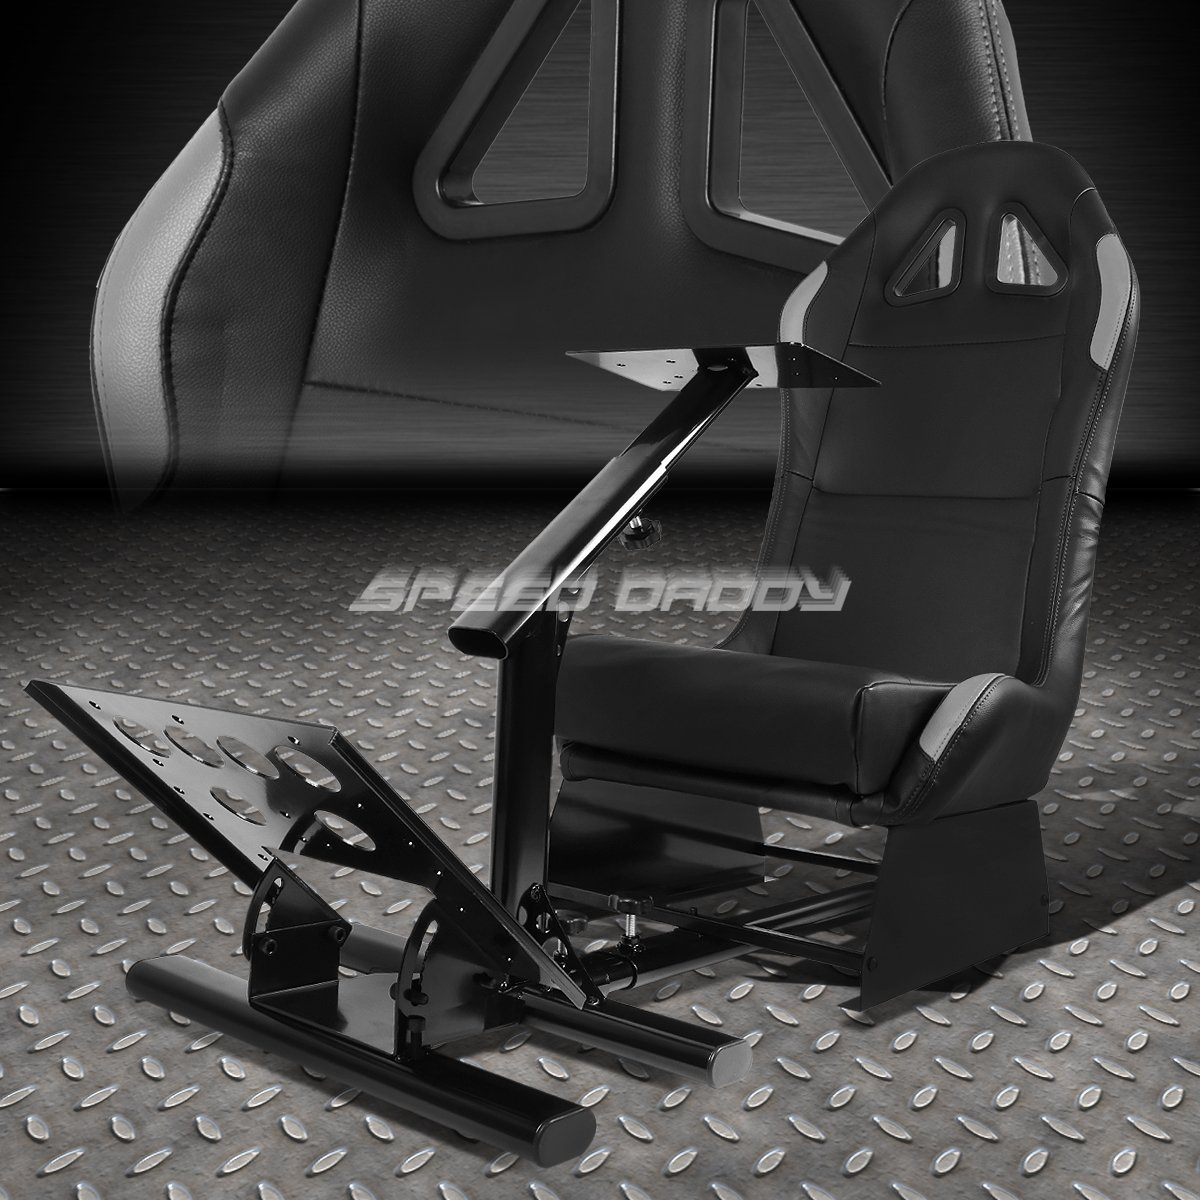 Racing Seat Driving Simulator Cockpit Adjustable Gaming Chair + Steering Wheel / Pedal / Gear Shifter Mount (Gray)